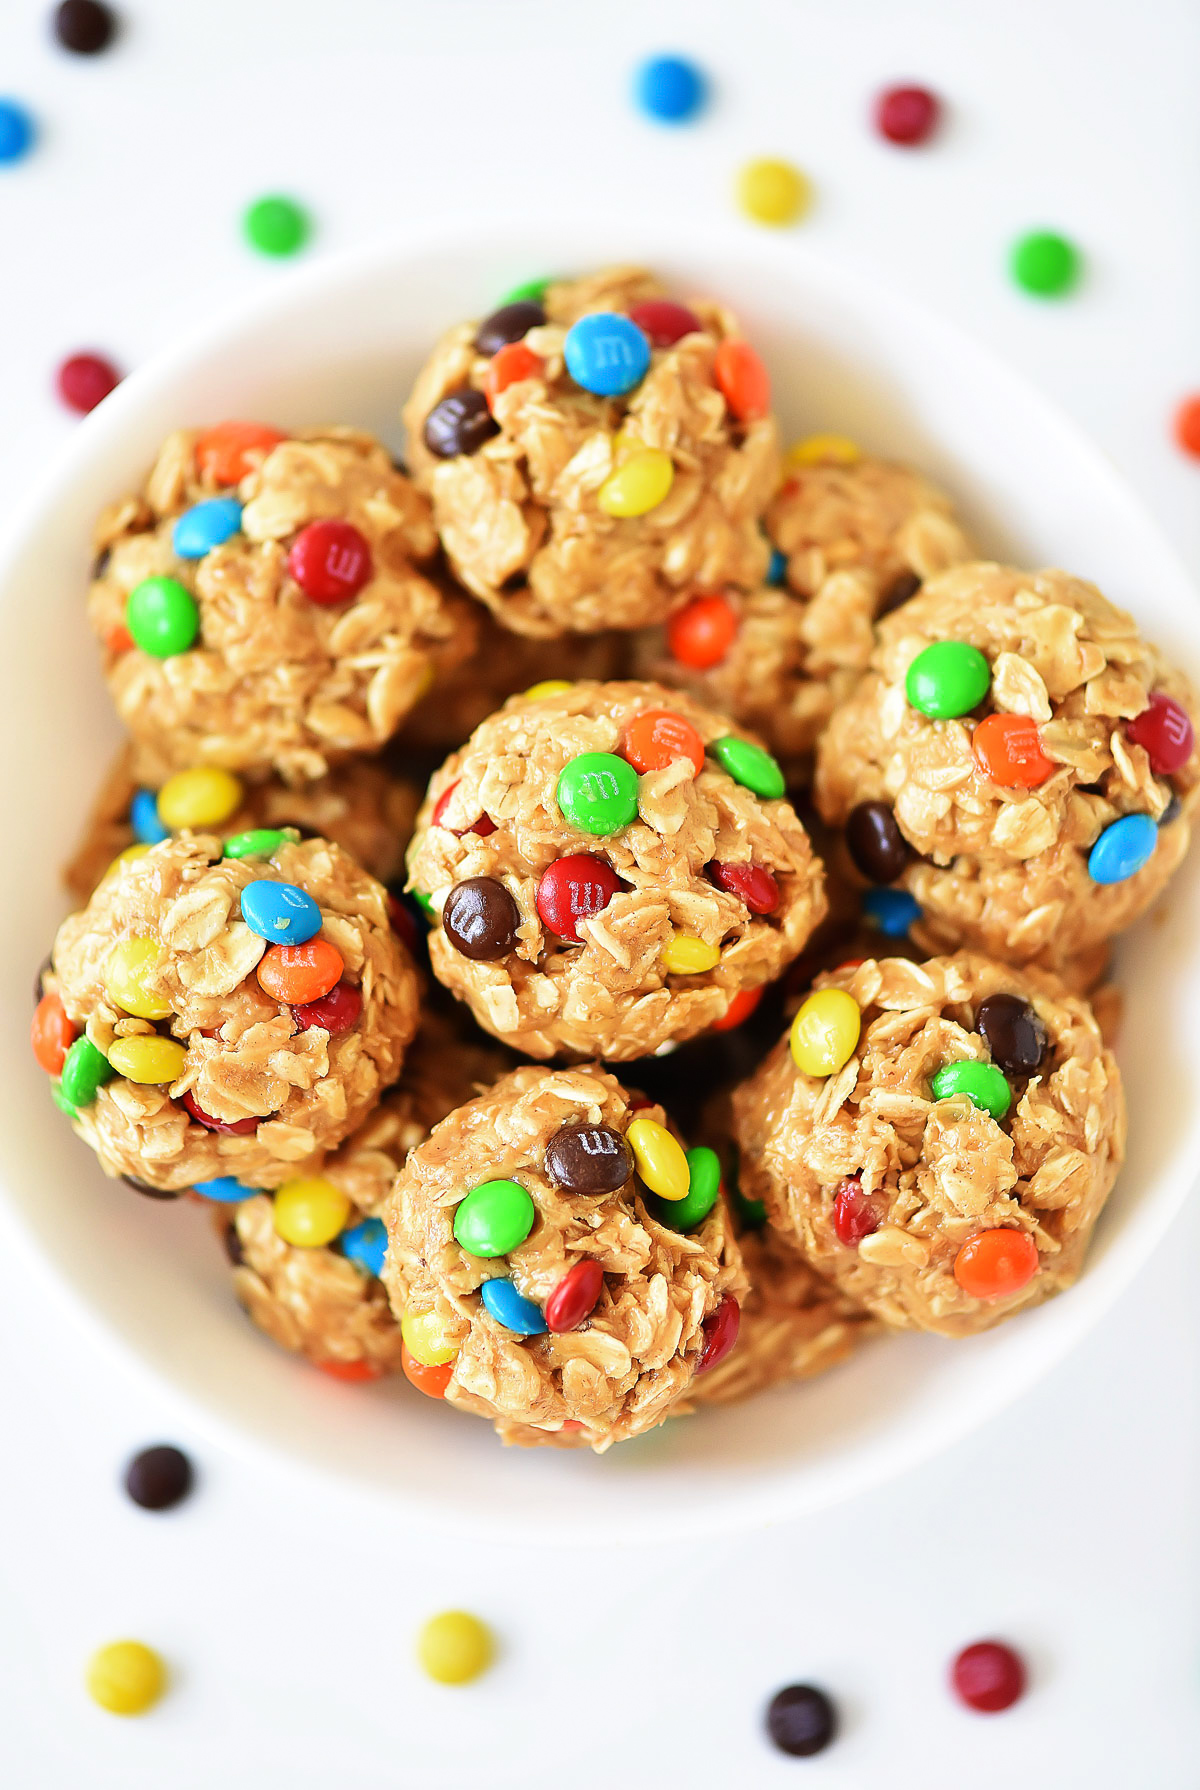 No Bake M&M Energy Bites are delicious bite-sized snacks made with oats, M&M's, peanut butter, honey and vanilla extract. Life-in-the-Lofthouse.com